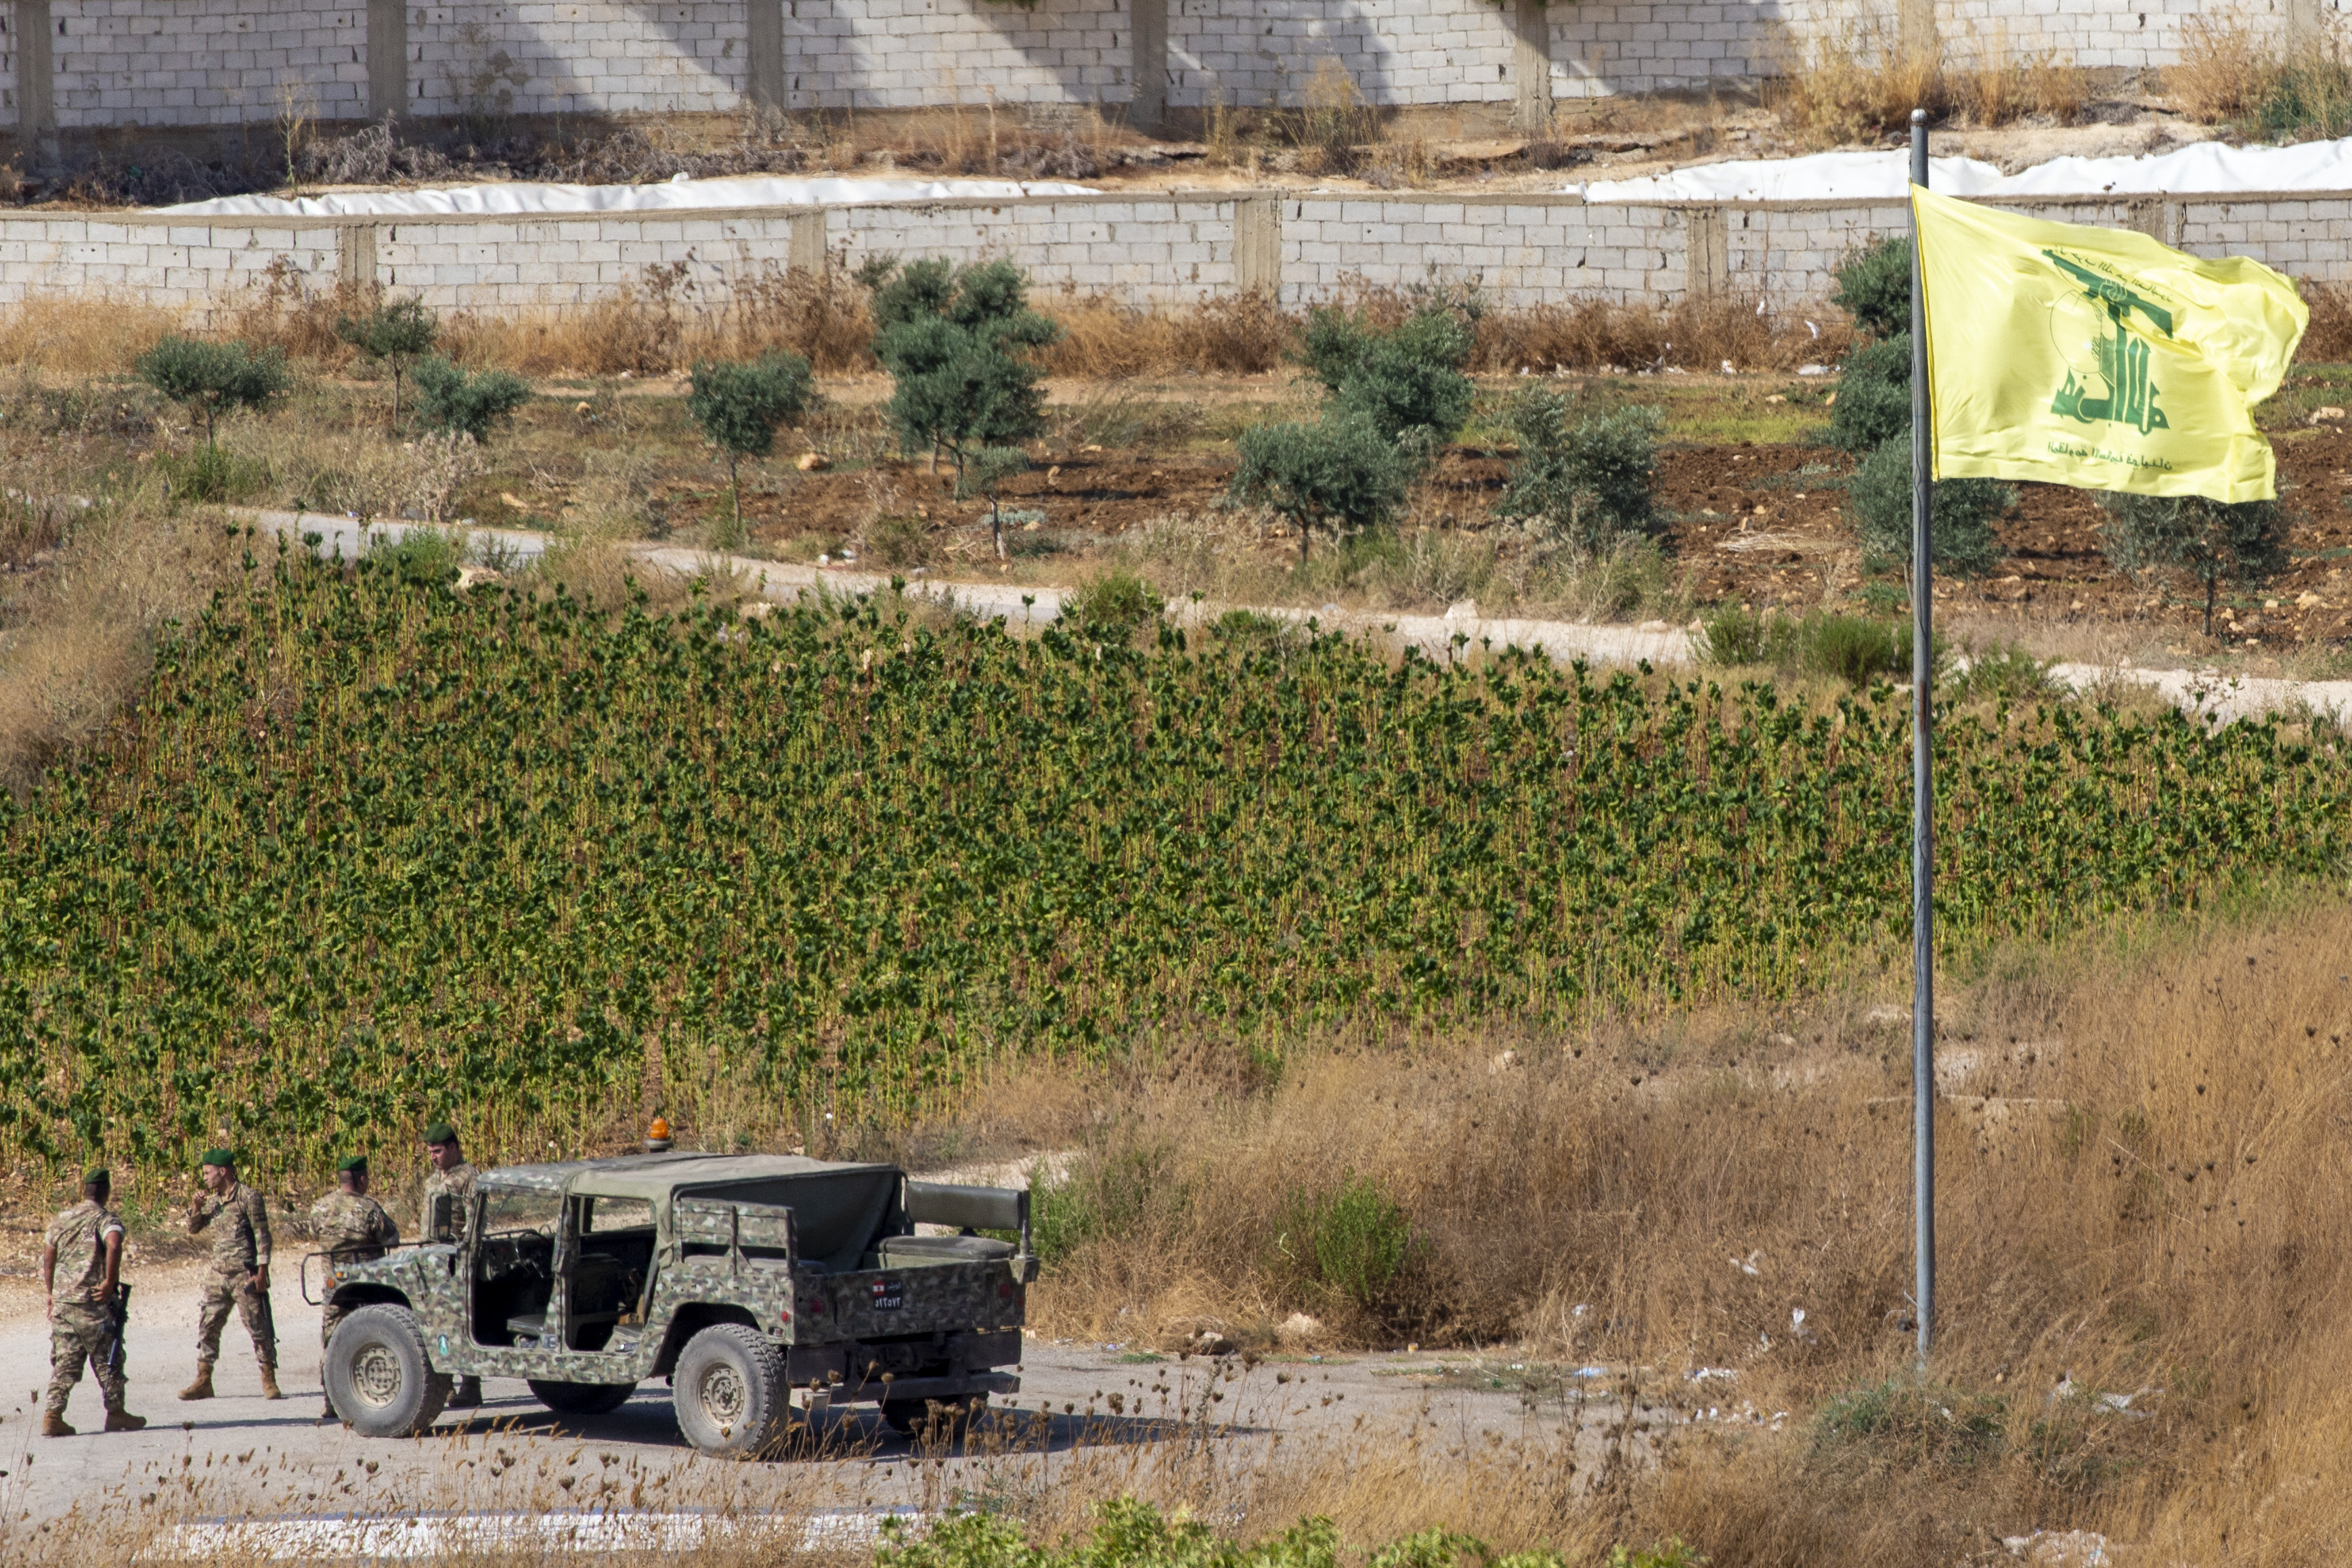 Lebanese army fires at Israeli drones that entered airspace